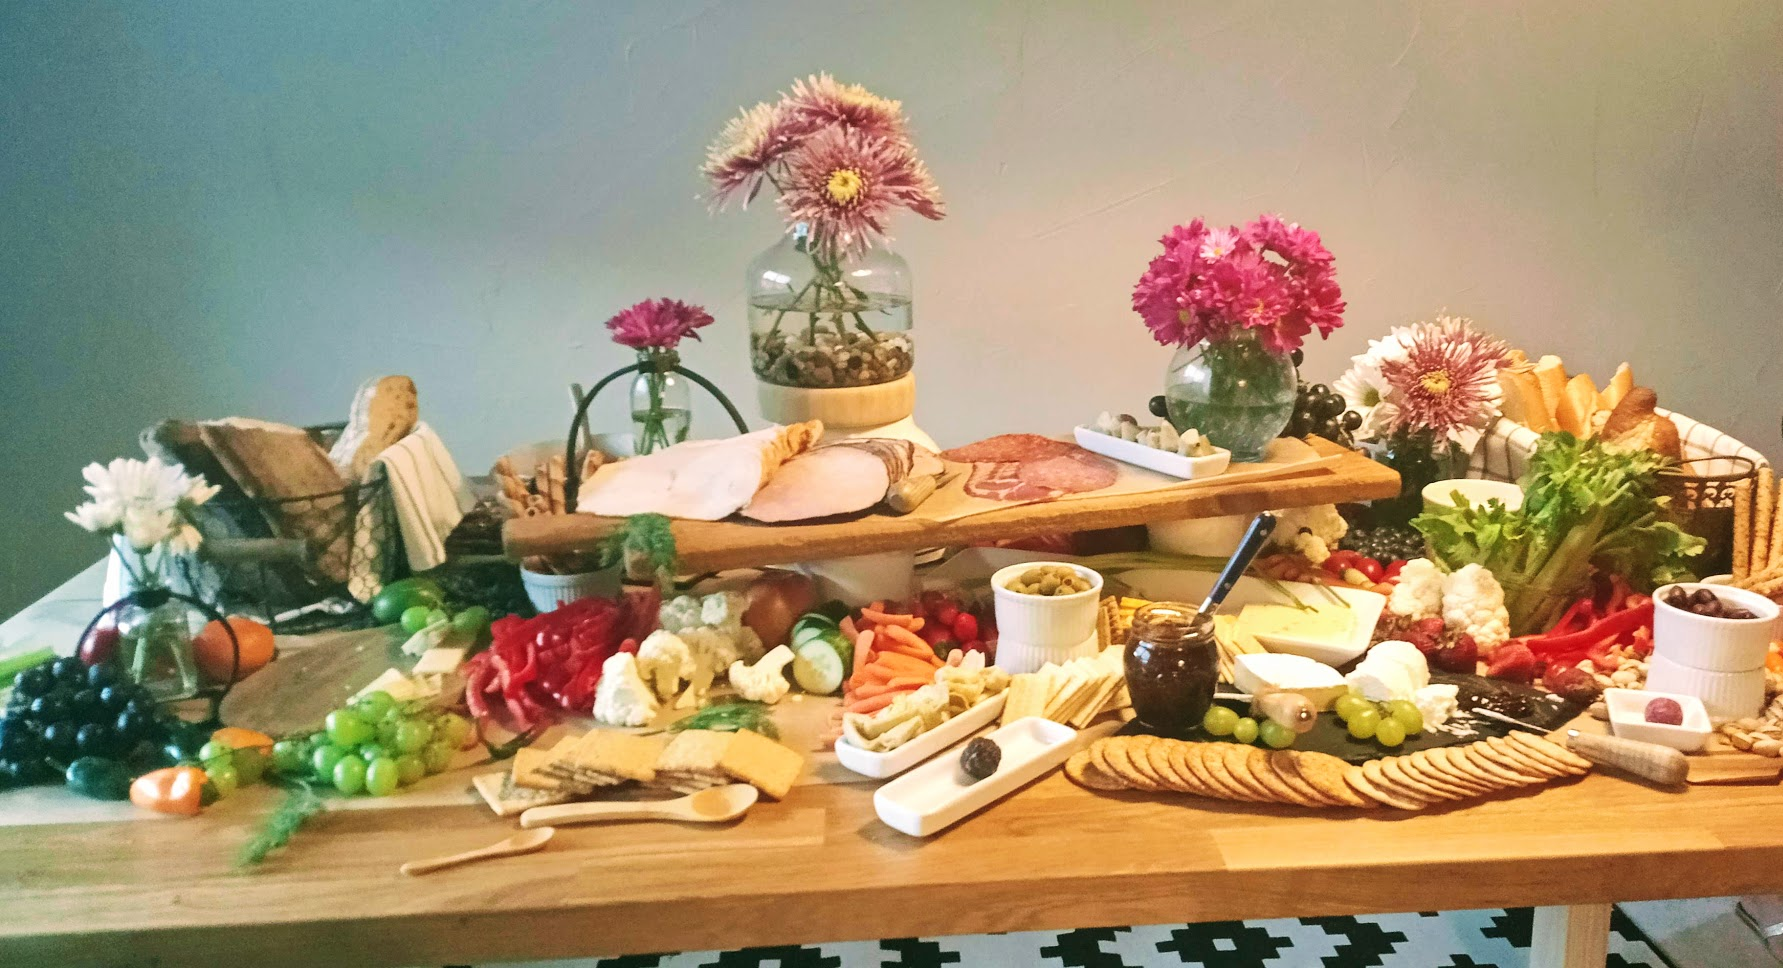 Try a Grazing Table at your next party - Beautiful, delicious and Easy!